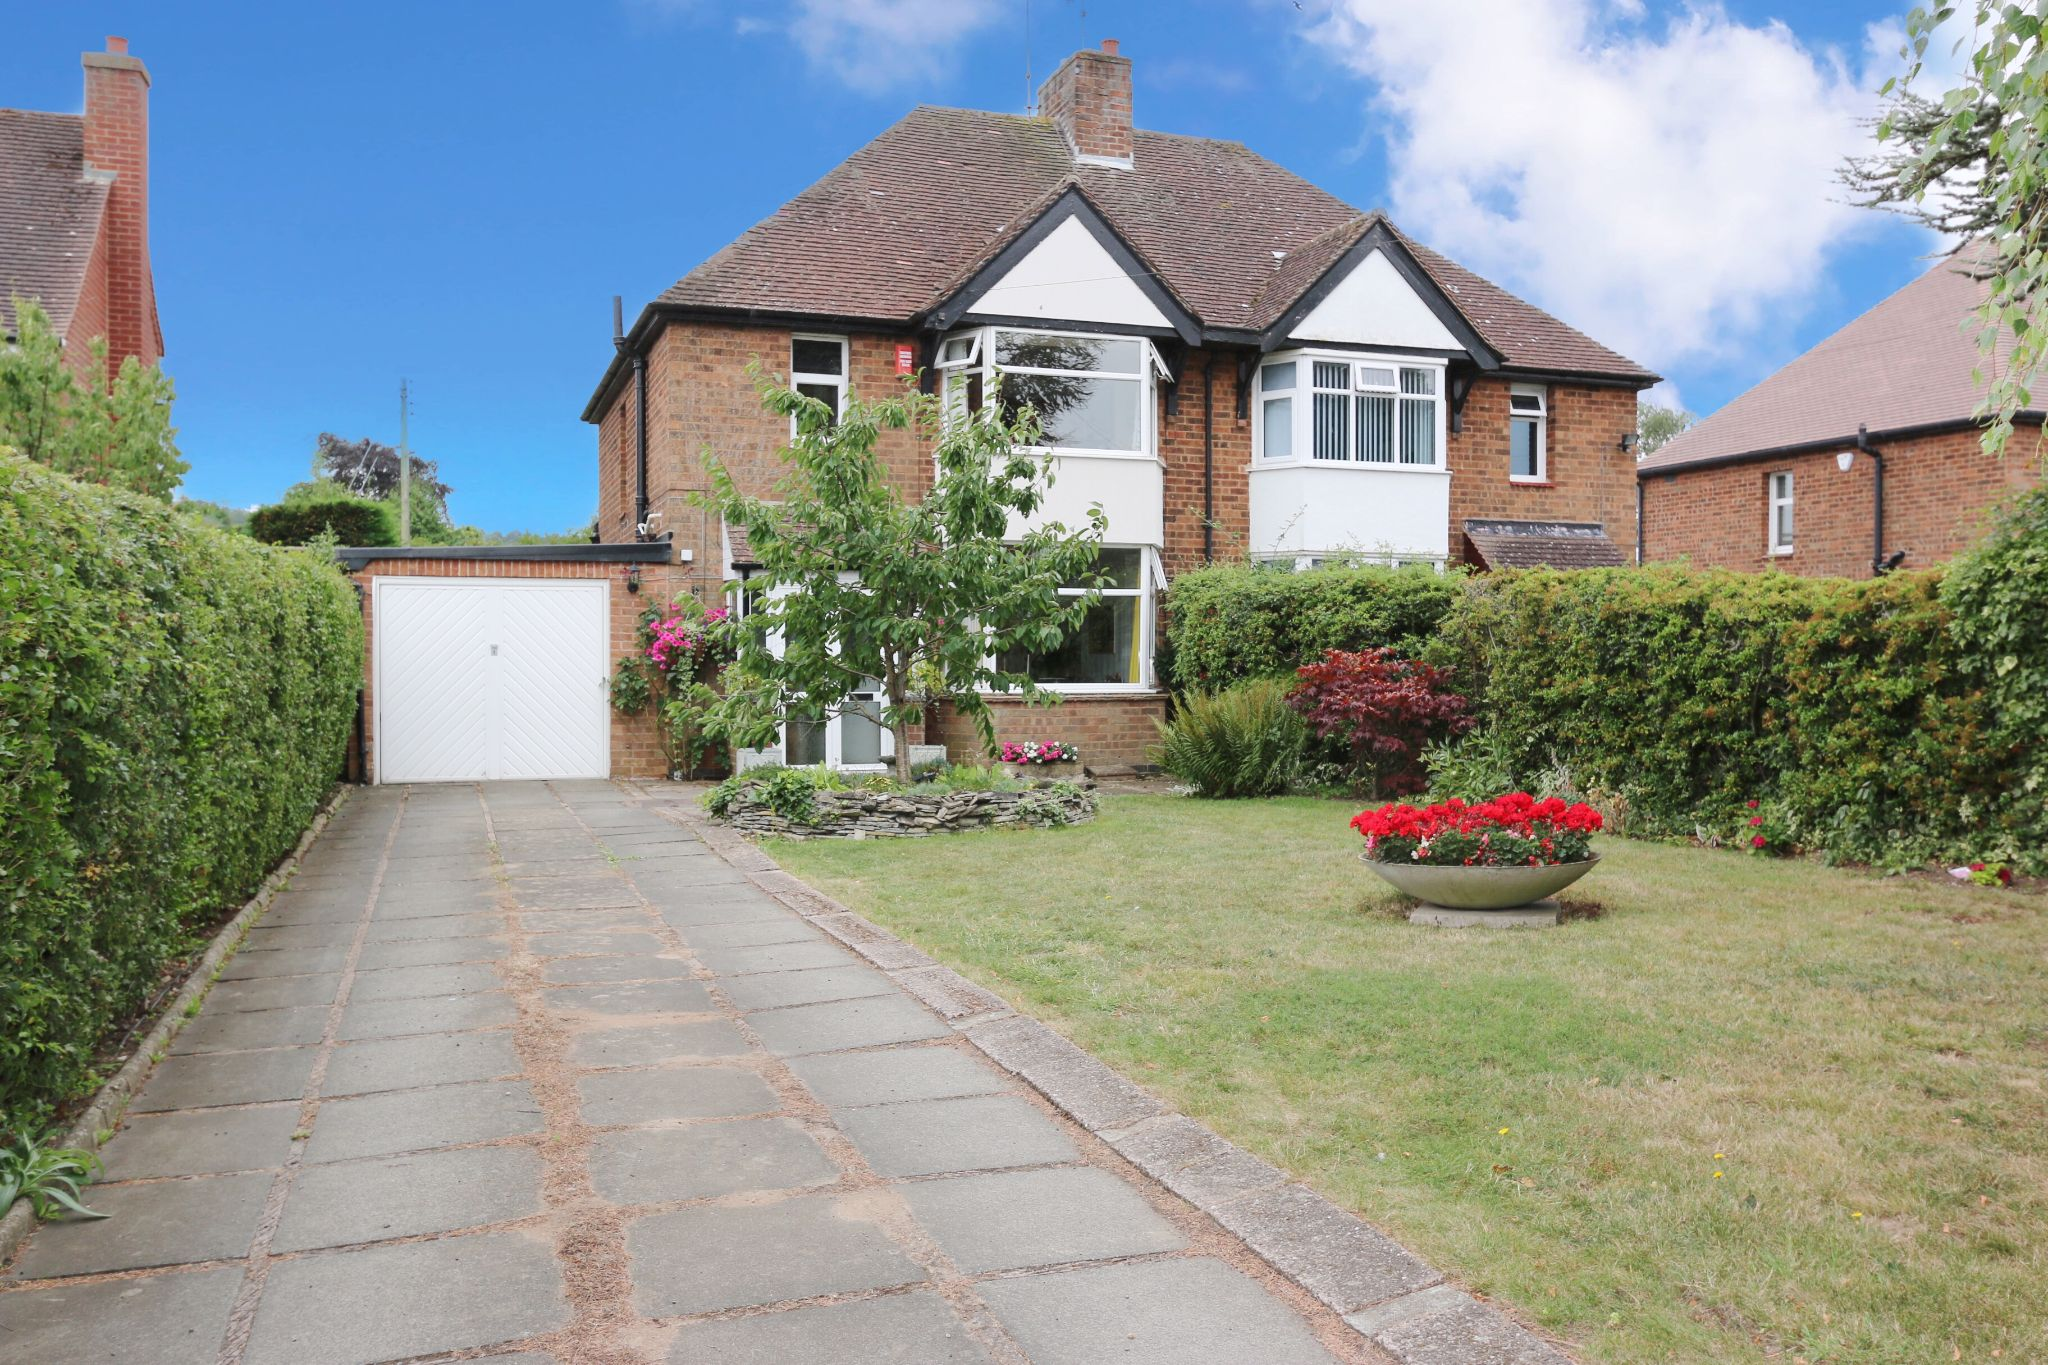 3 bedroom semi-detached house For Sale in Oversley Green, Alcester - Property photograph